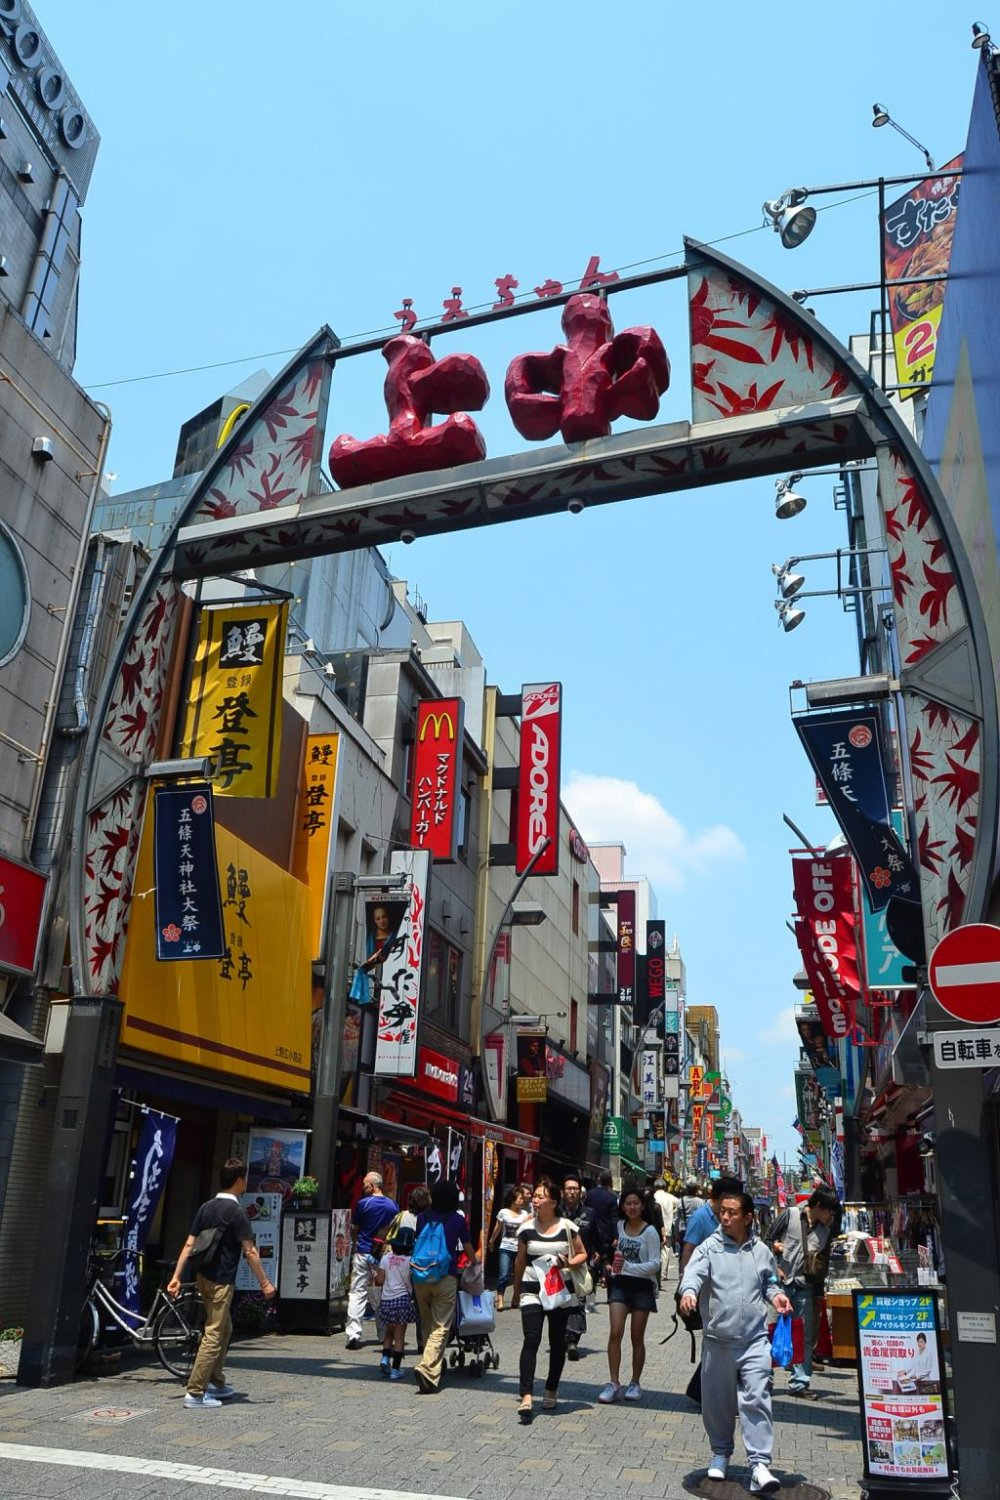 One of the entrance gates to Ameyoko market.